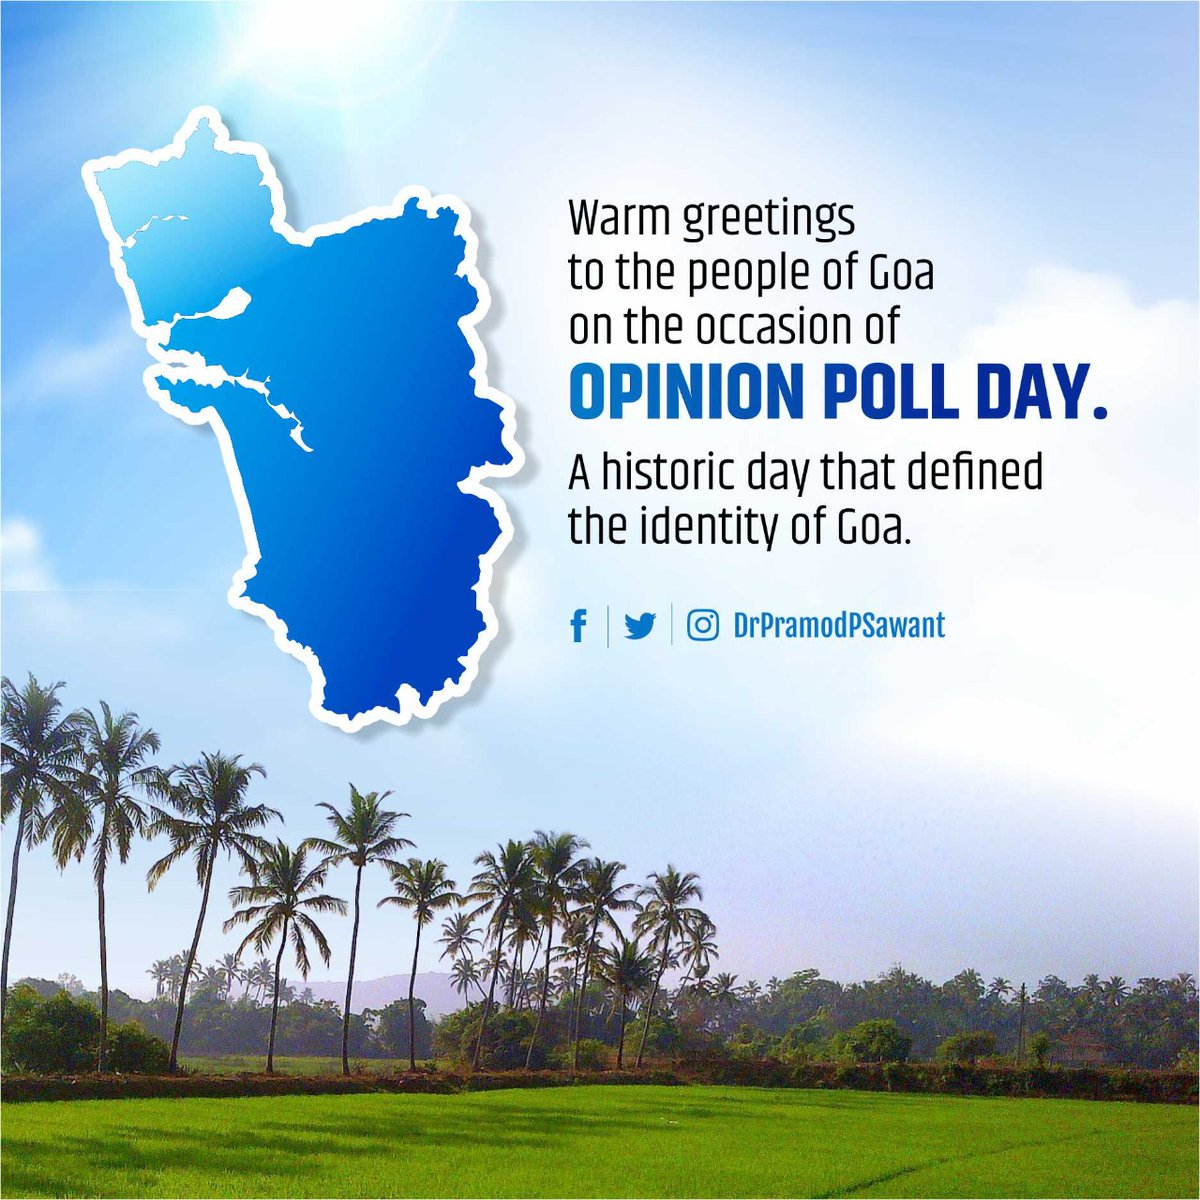 Warm greetings to the people of Goa on the occasion of Opinion Poll Day. A historic day that defined the identity of Goa.